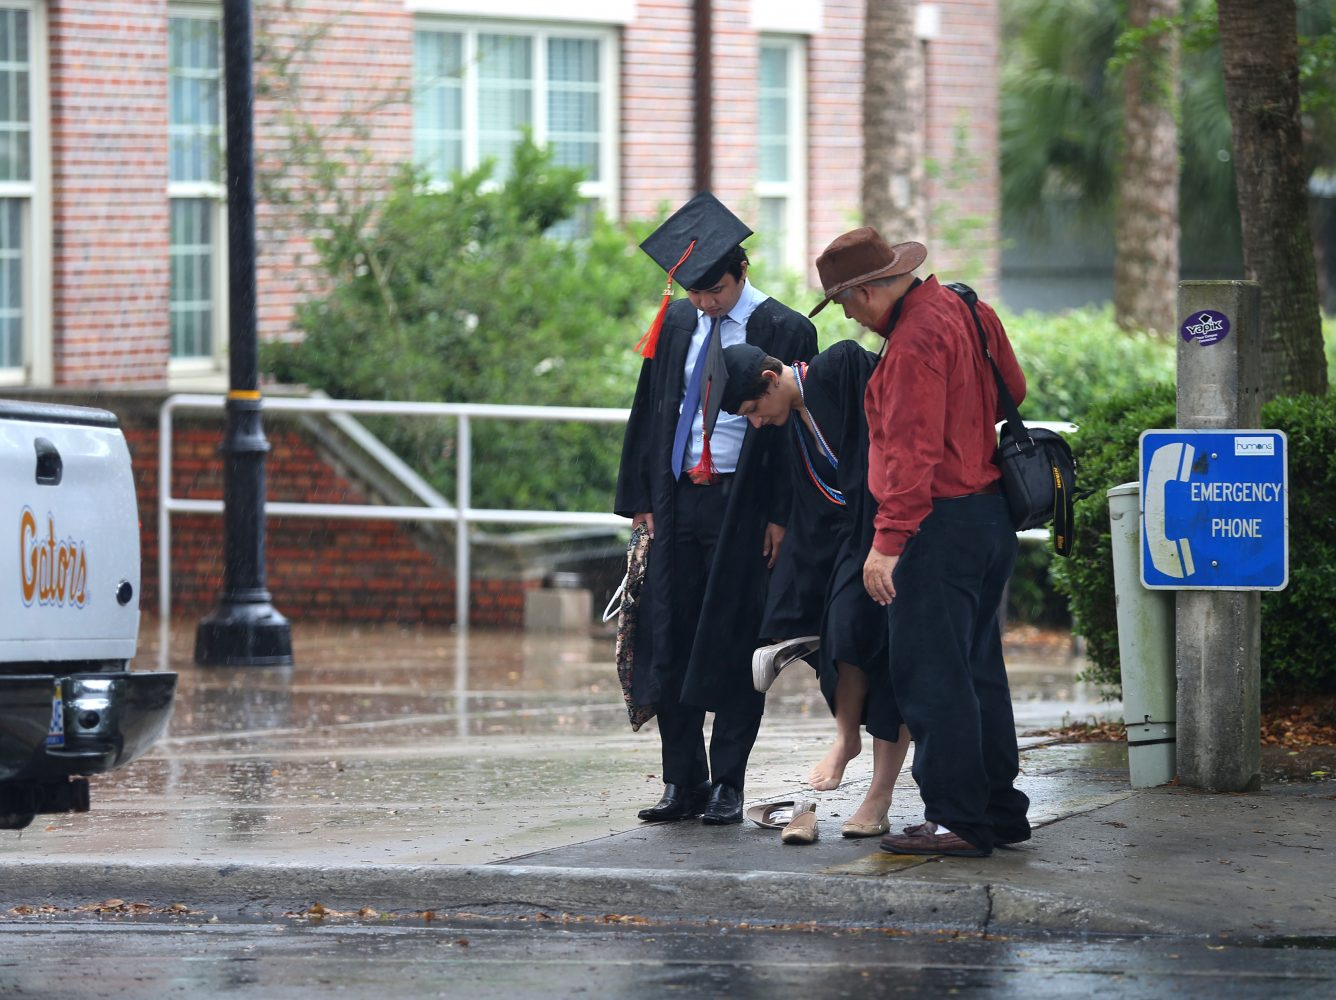 A graduate takes off her heels as the rain pours down on Stadium Road at the University of Florida on Thursday, May 1, 2014, in Gainesville, Fla.